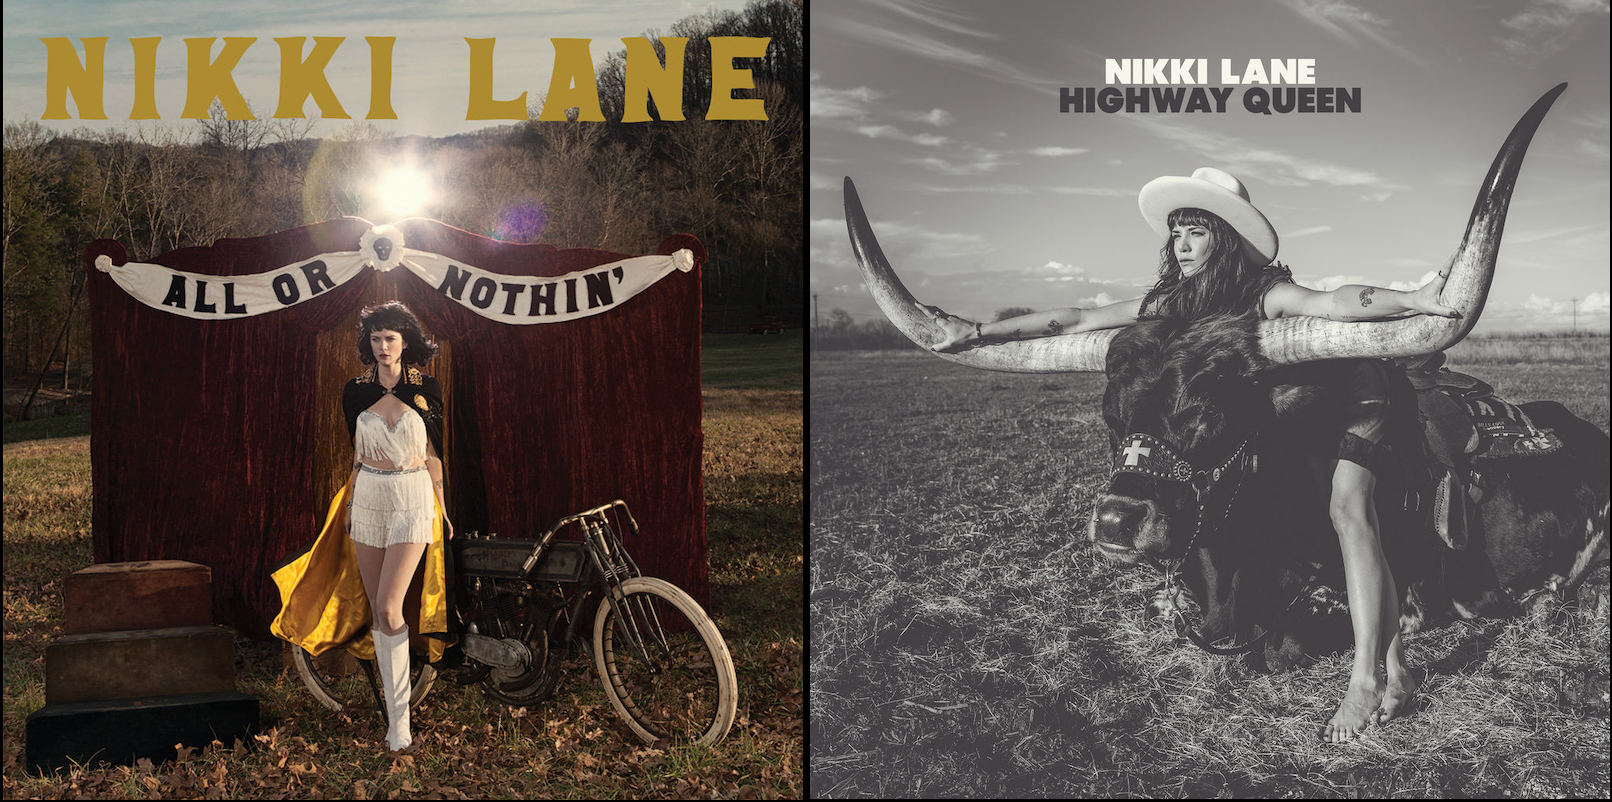 Nikki Lane, All Or Nothin' album cover; Nikki Lane, Highway Queen album cover